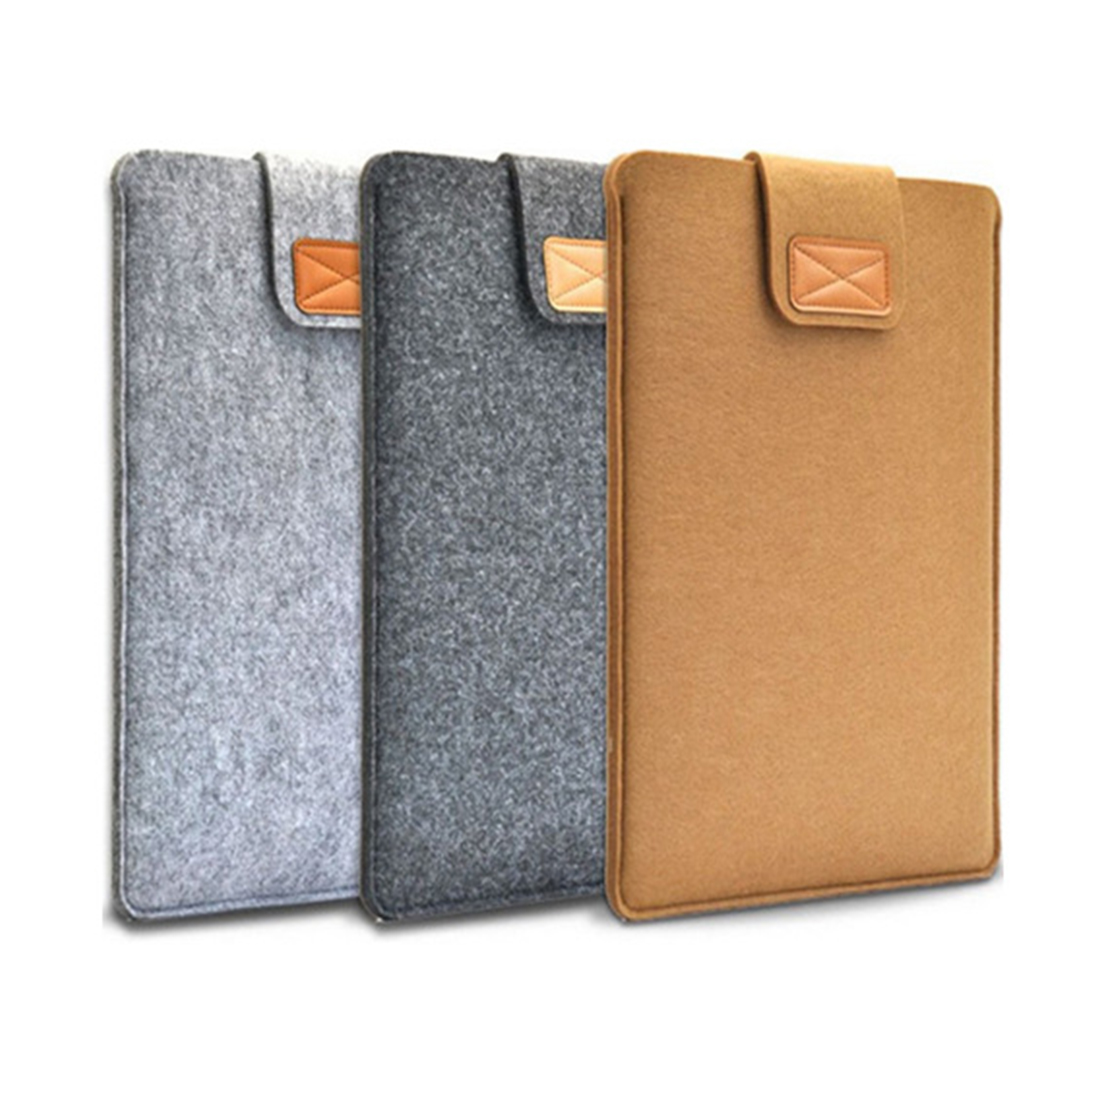 Soft <font><b>Sleeve</b></font> Felt Bag Case Cover Anti-scratch for 11inch/ <font><b>13inch</b></font>/ 15inch Macbook Air Pro Retina Ultrabook <font><b>Laptop</b></font> Tablet X DJA99 image